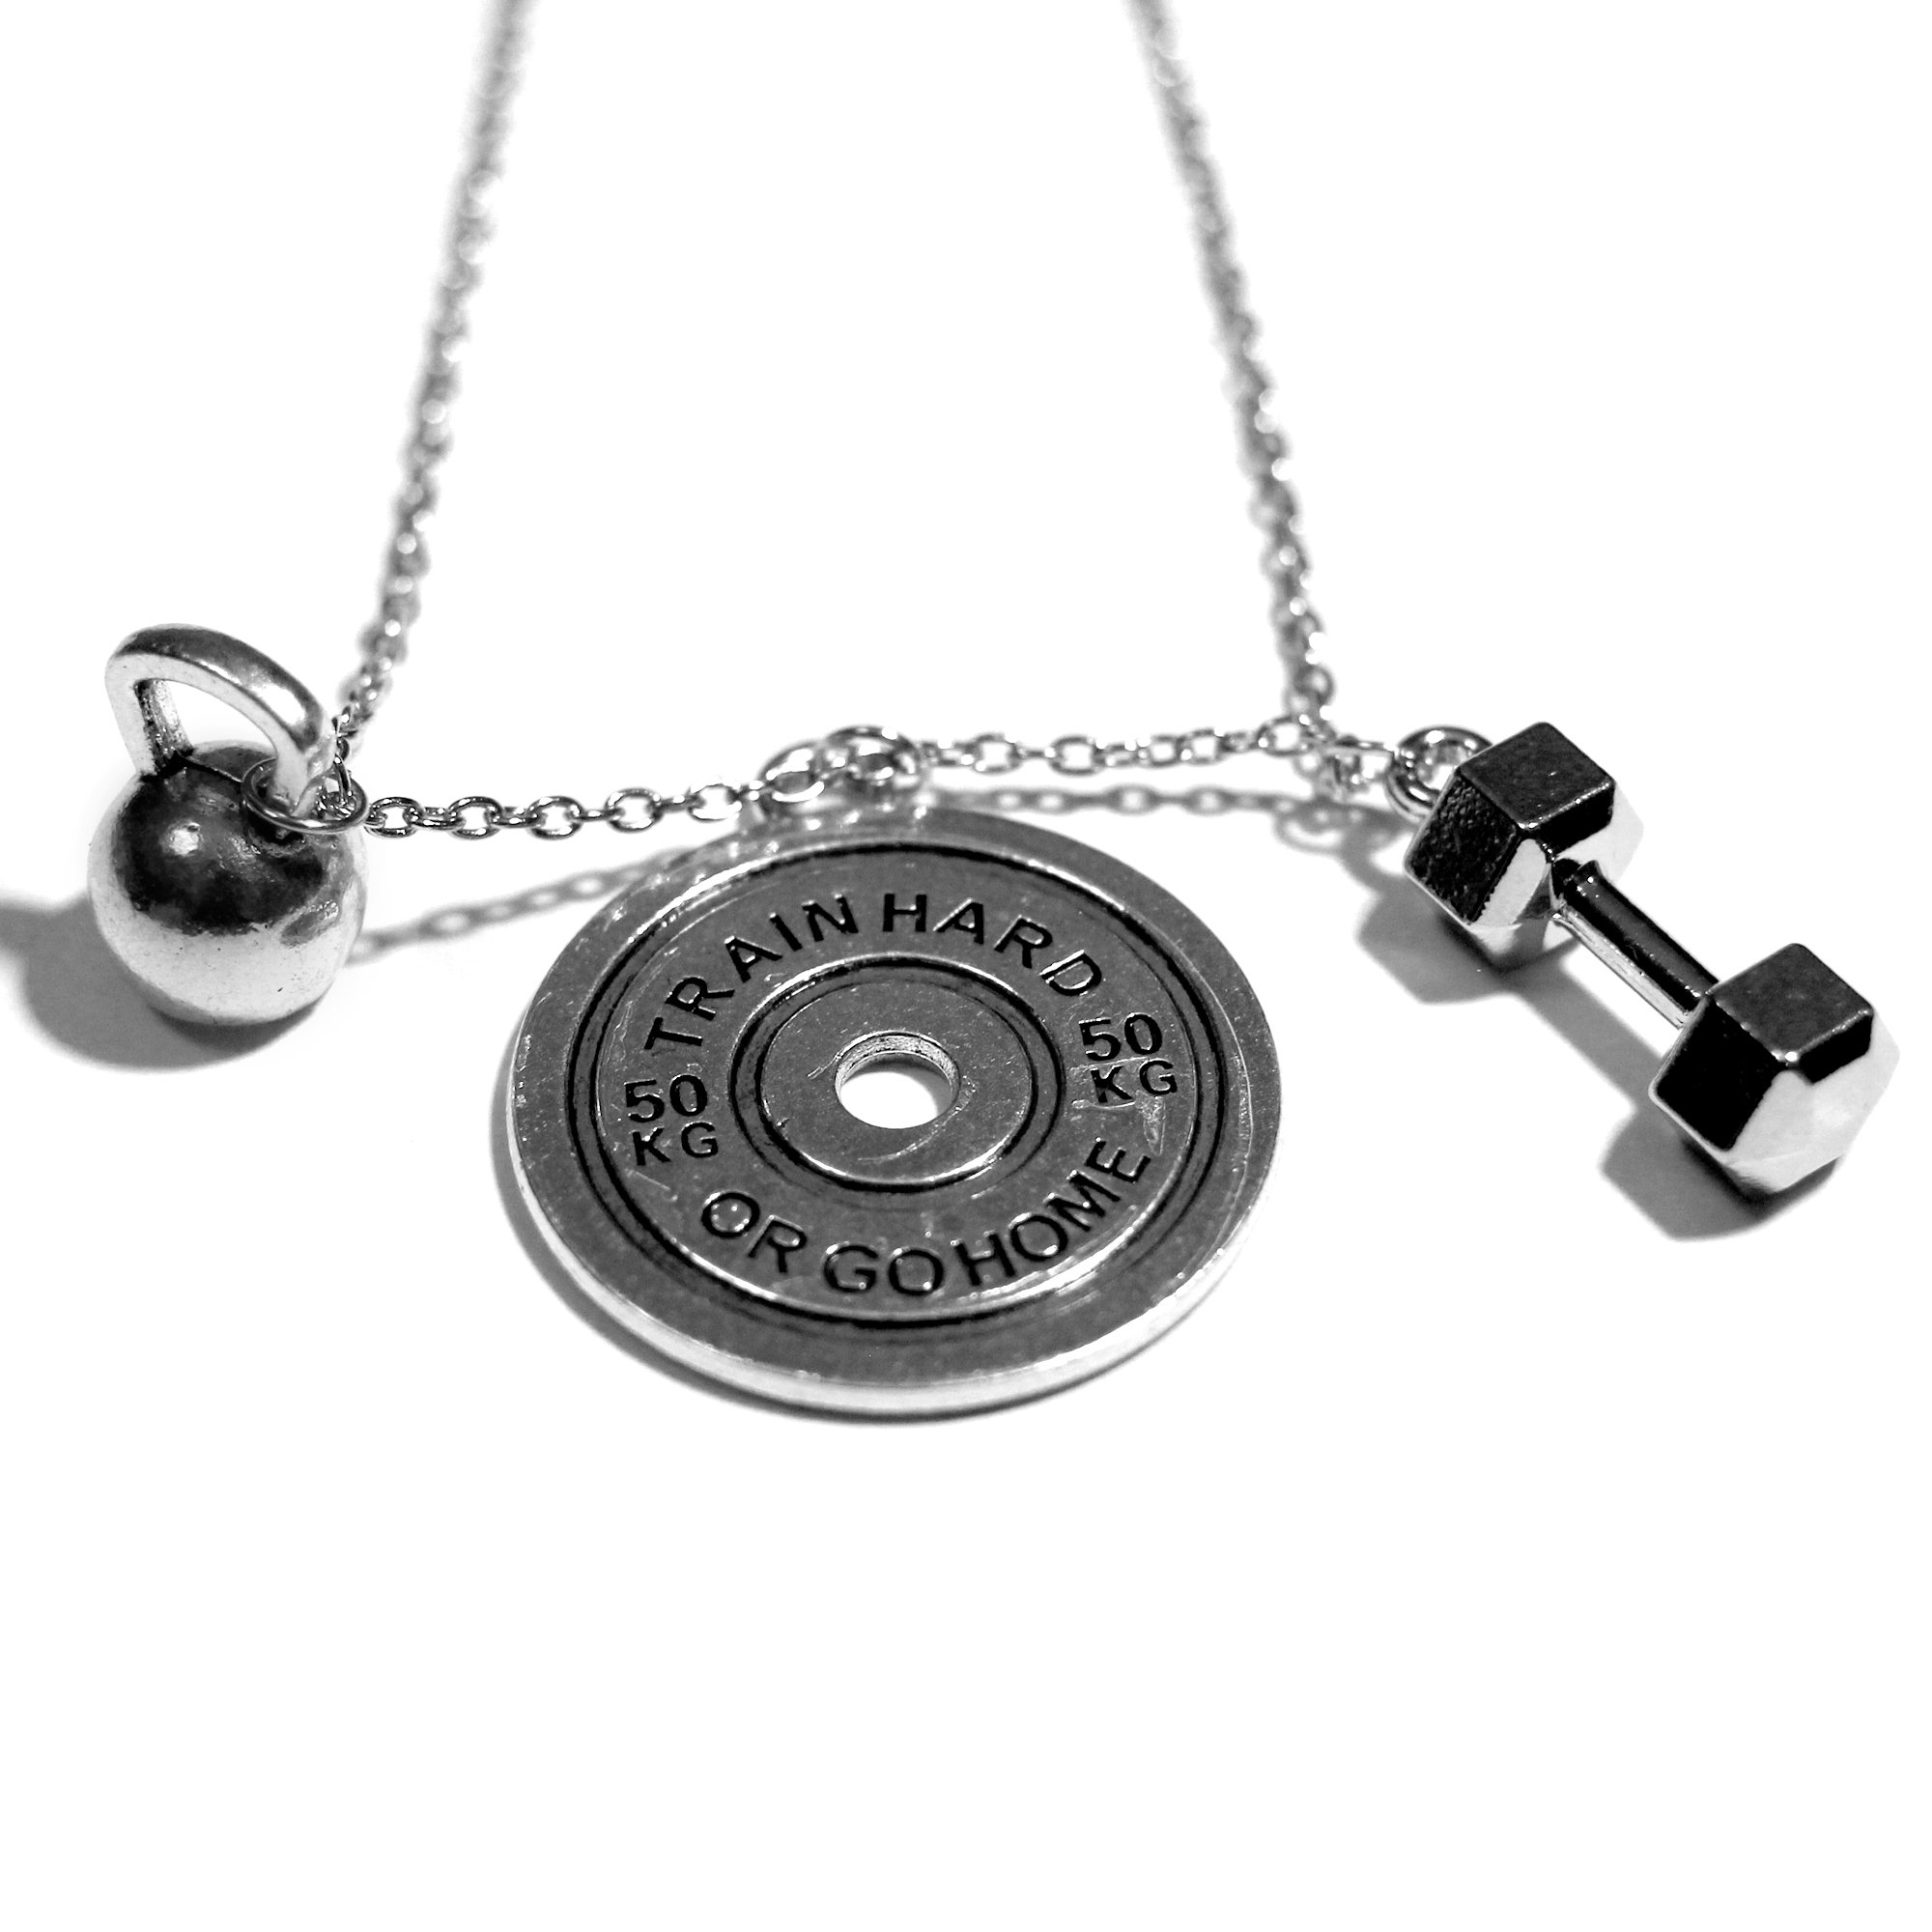 ''Train Hard'' Necklace By Santa Monica Charm Co. With Dumbbell and Kettlebell Pendants